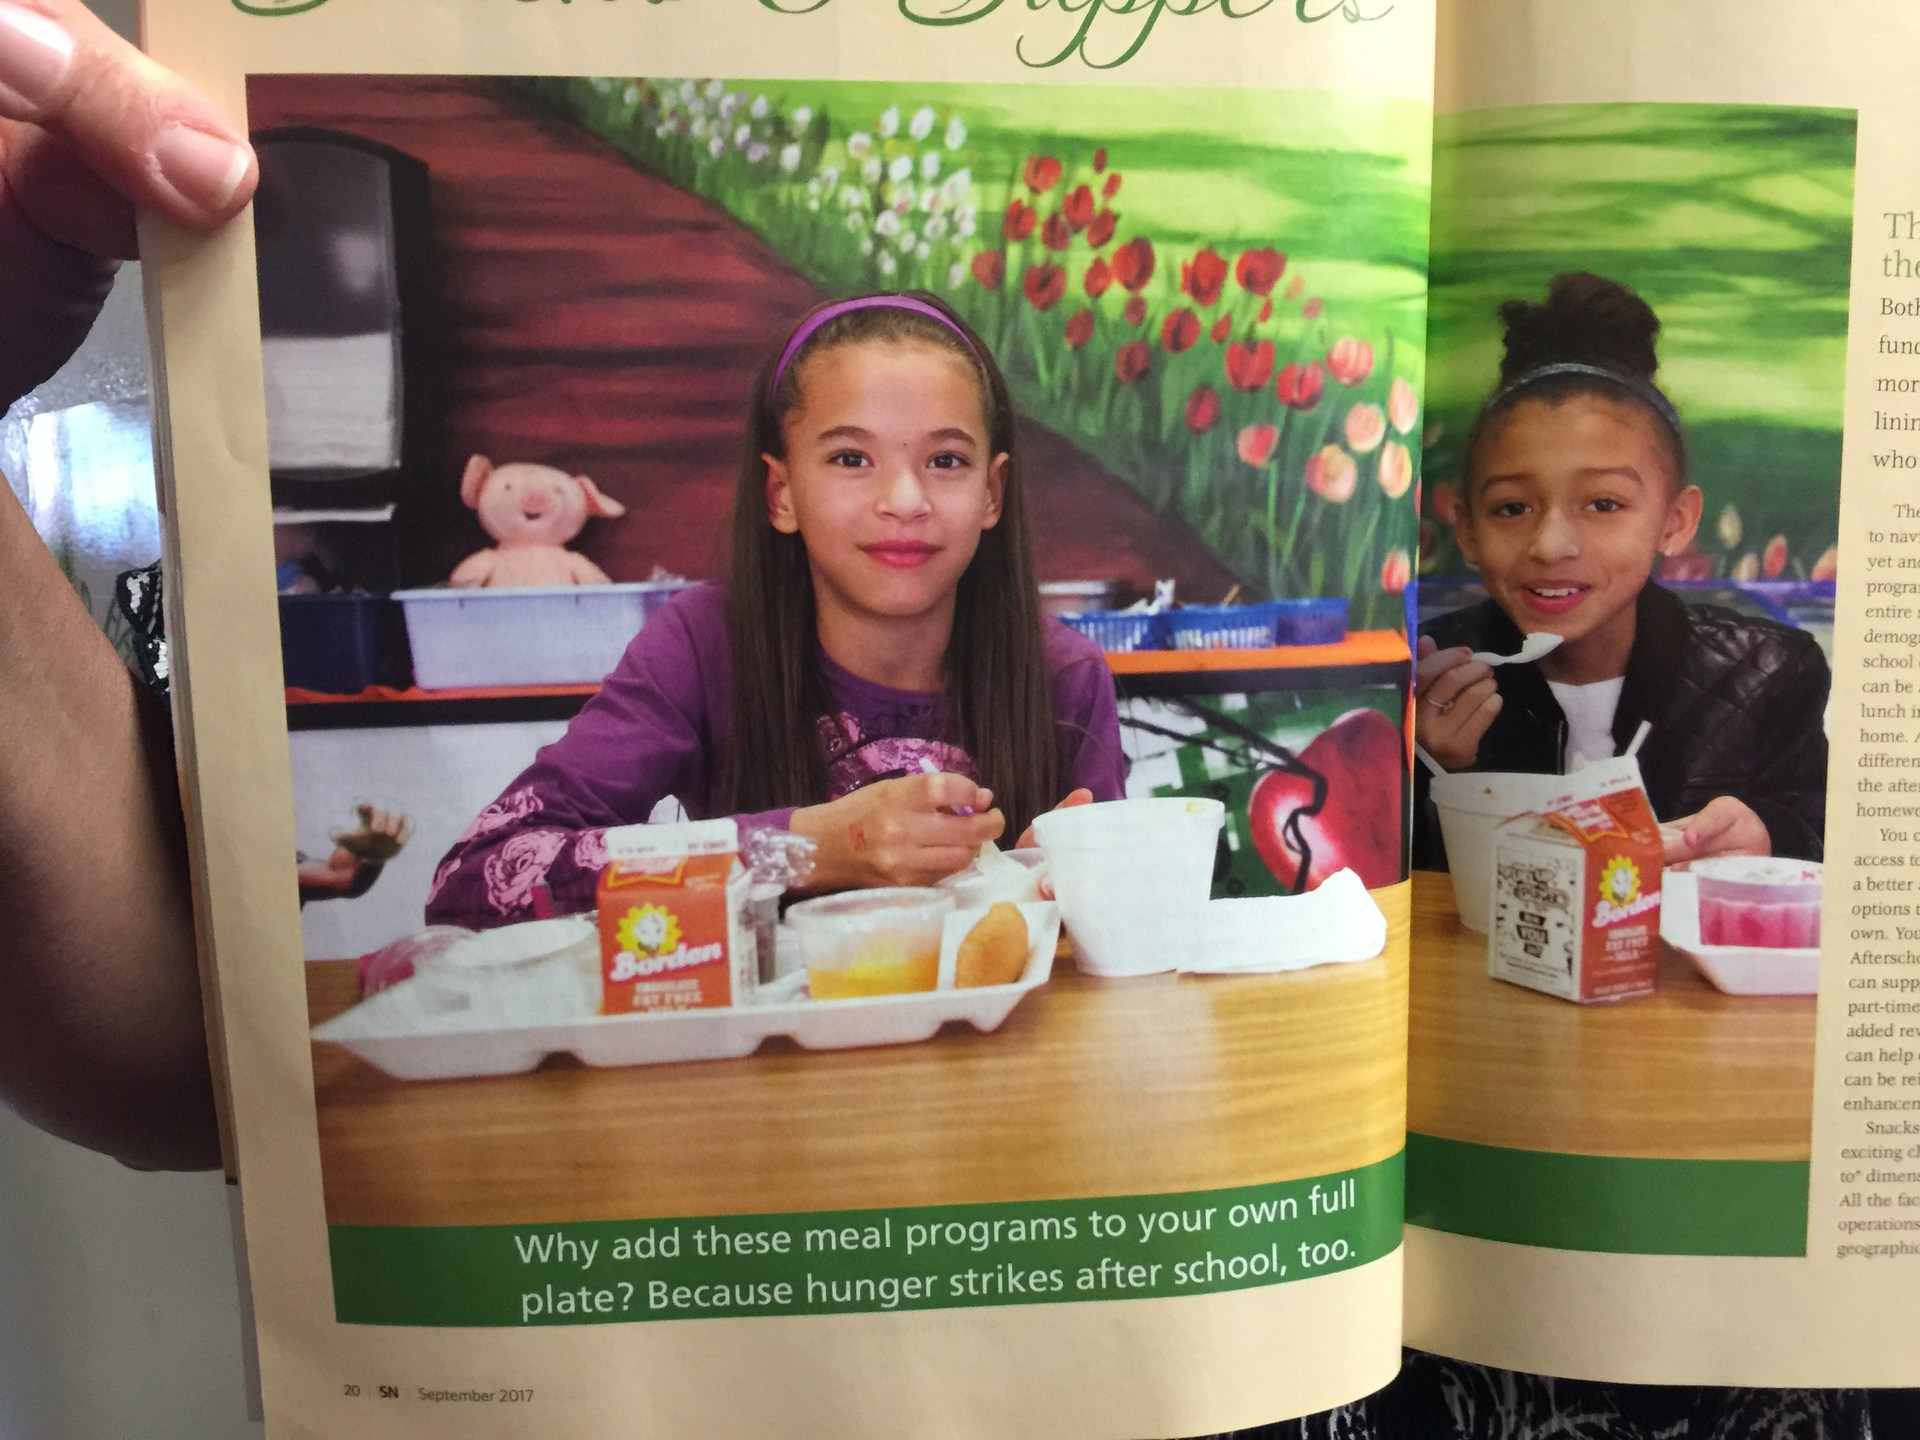 Our students in No Kid Hungry article.